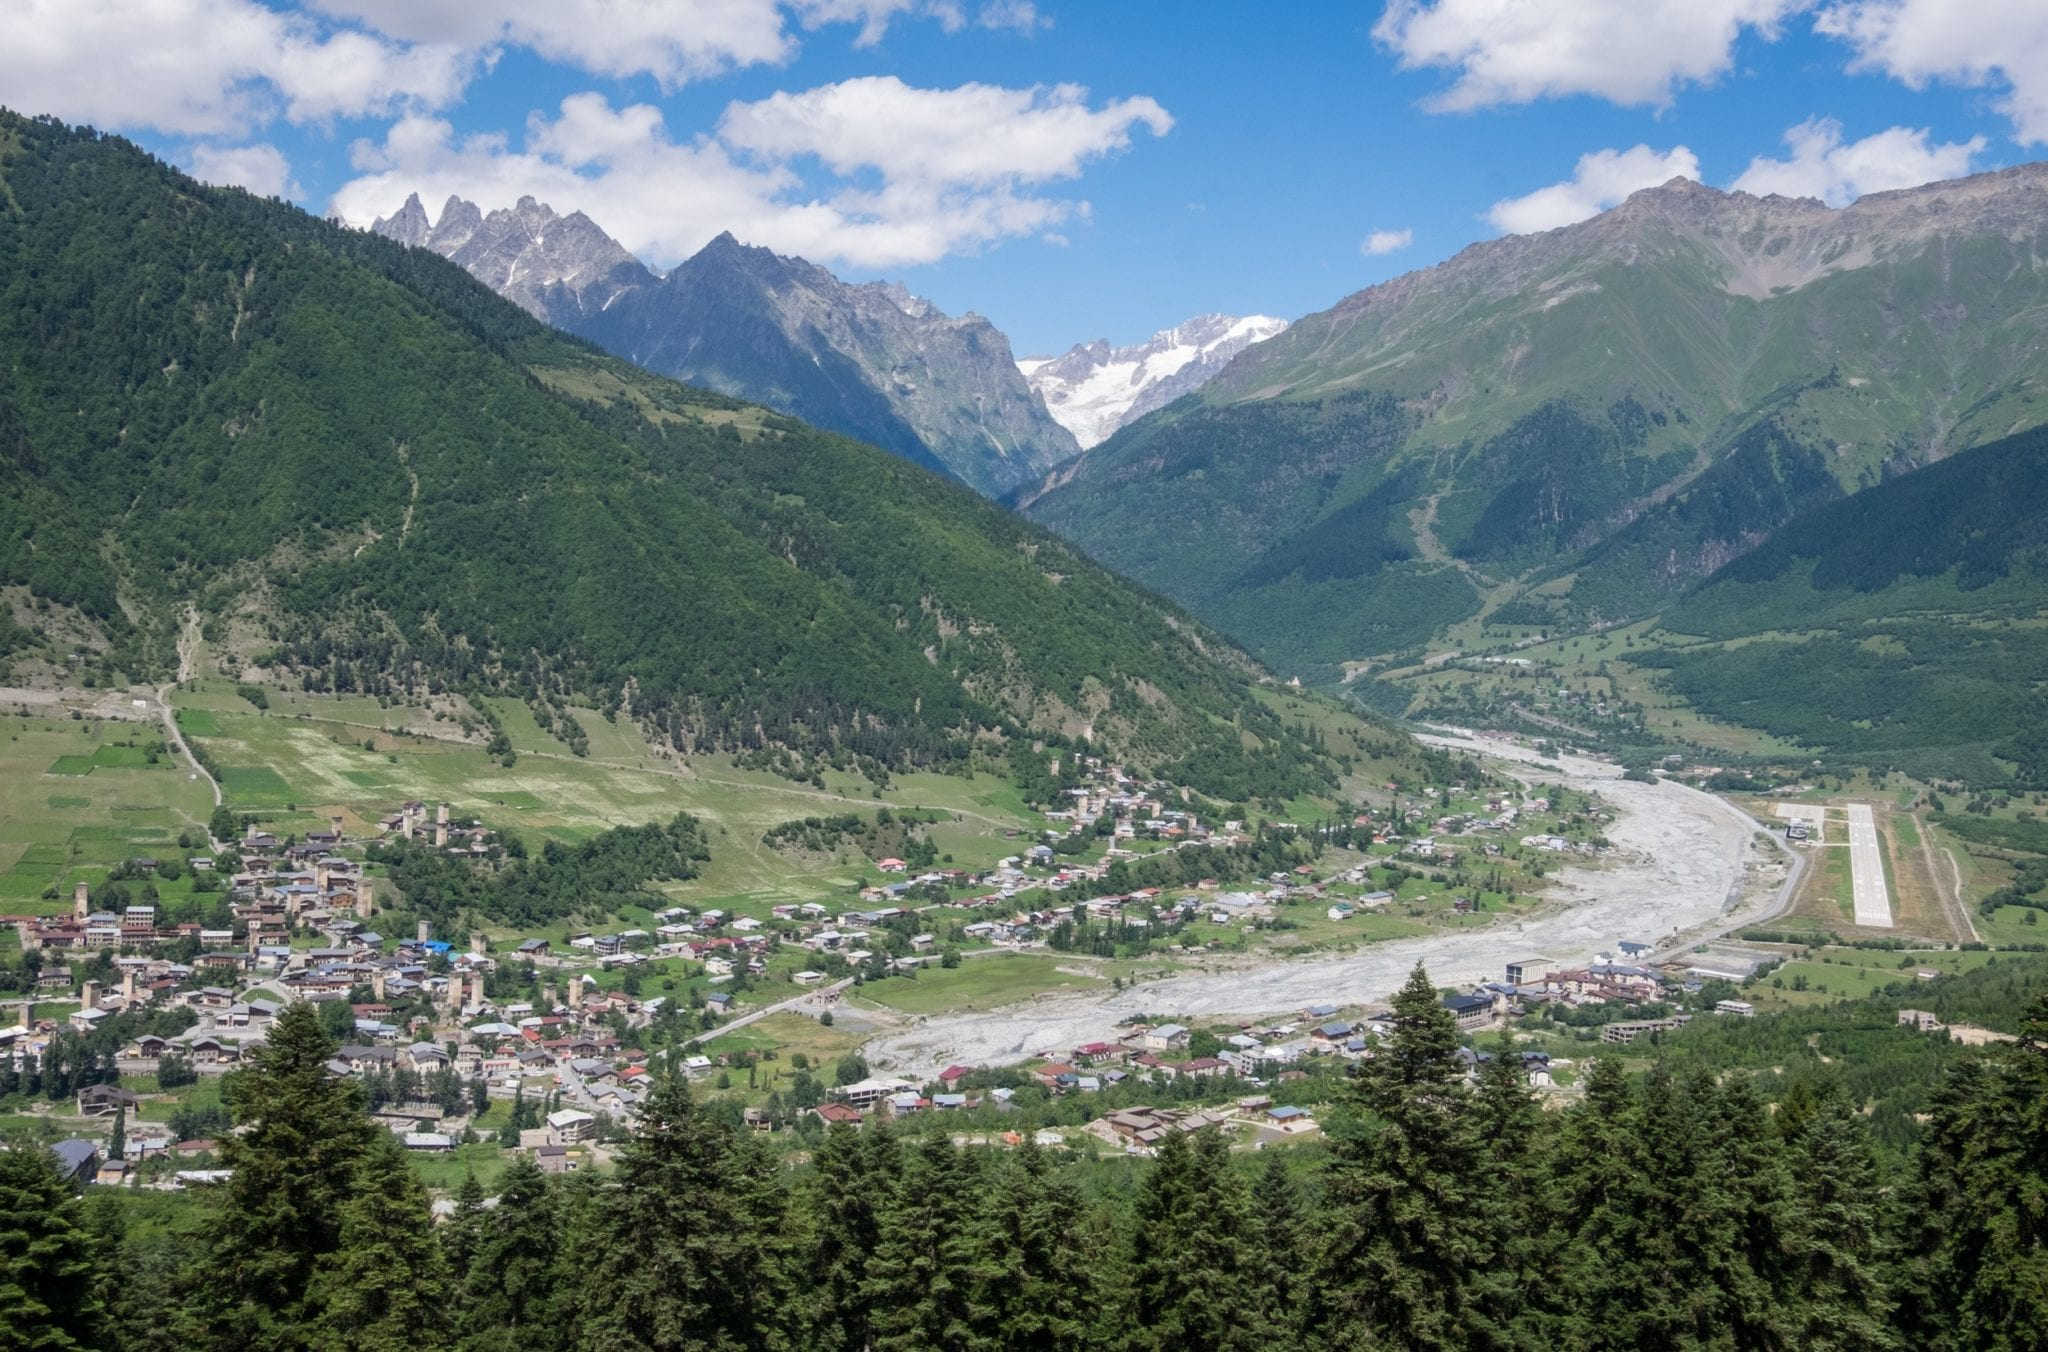 A view over the town of Mestia in Svaneti -- huge mountains underneath a blue sky; evergreen trees along the bottom, and a village full of stone towers.